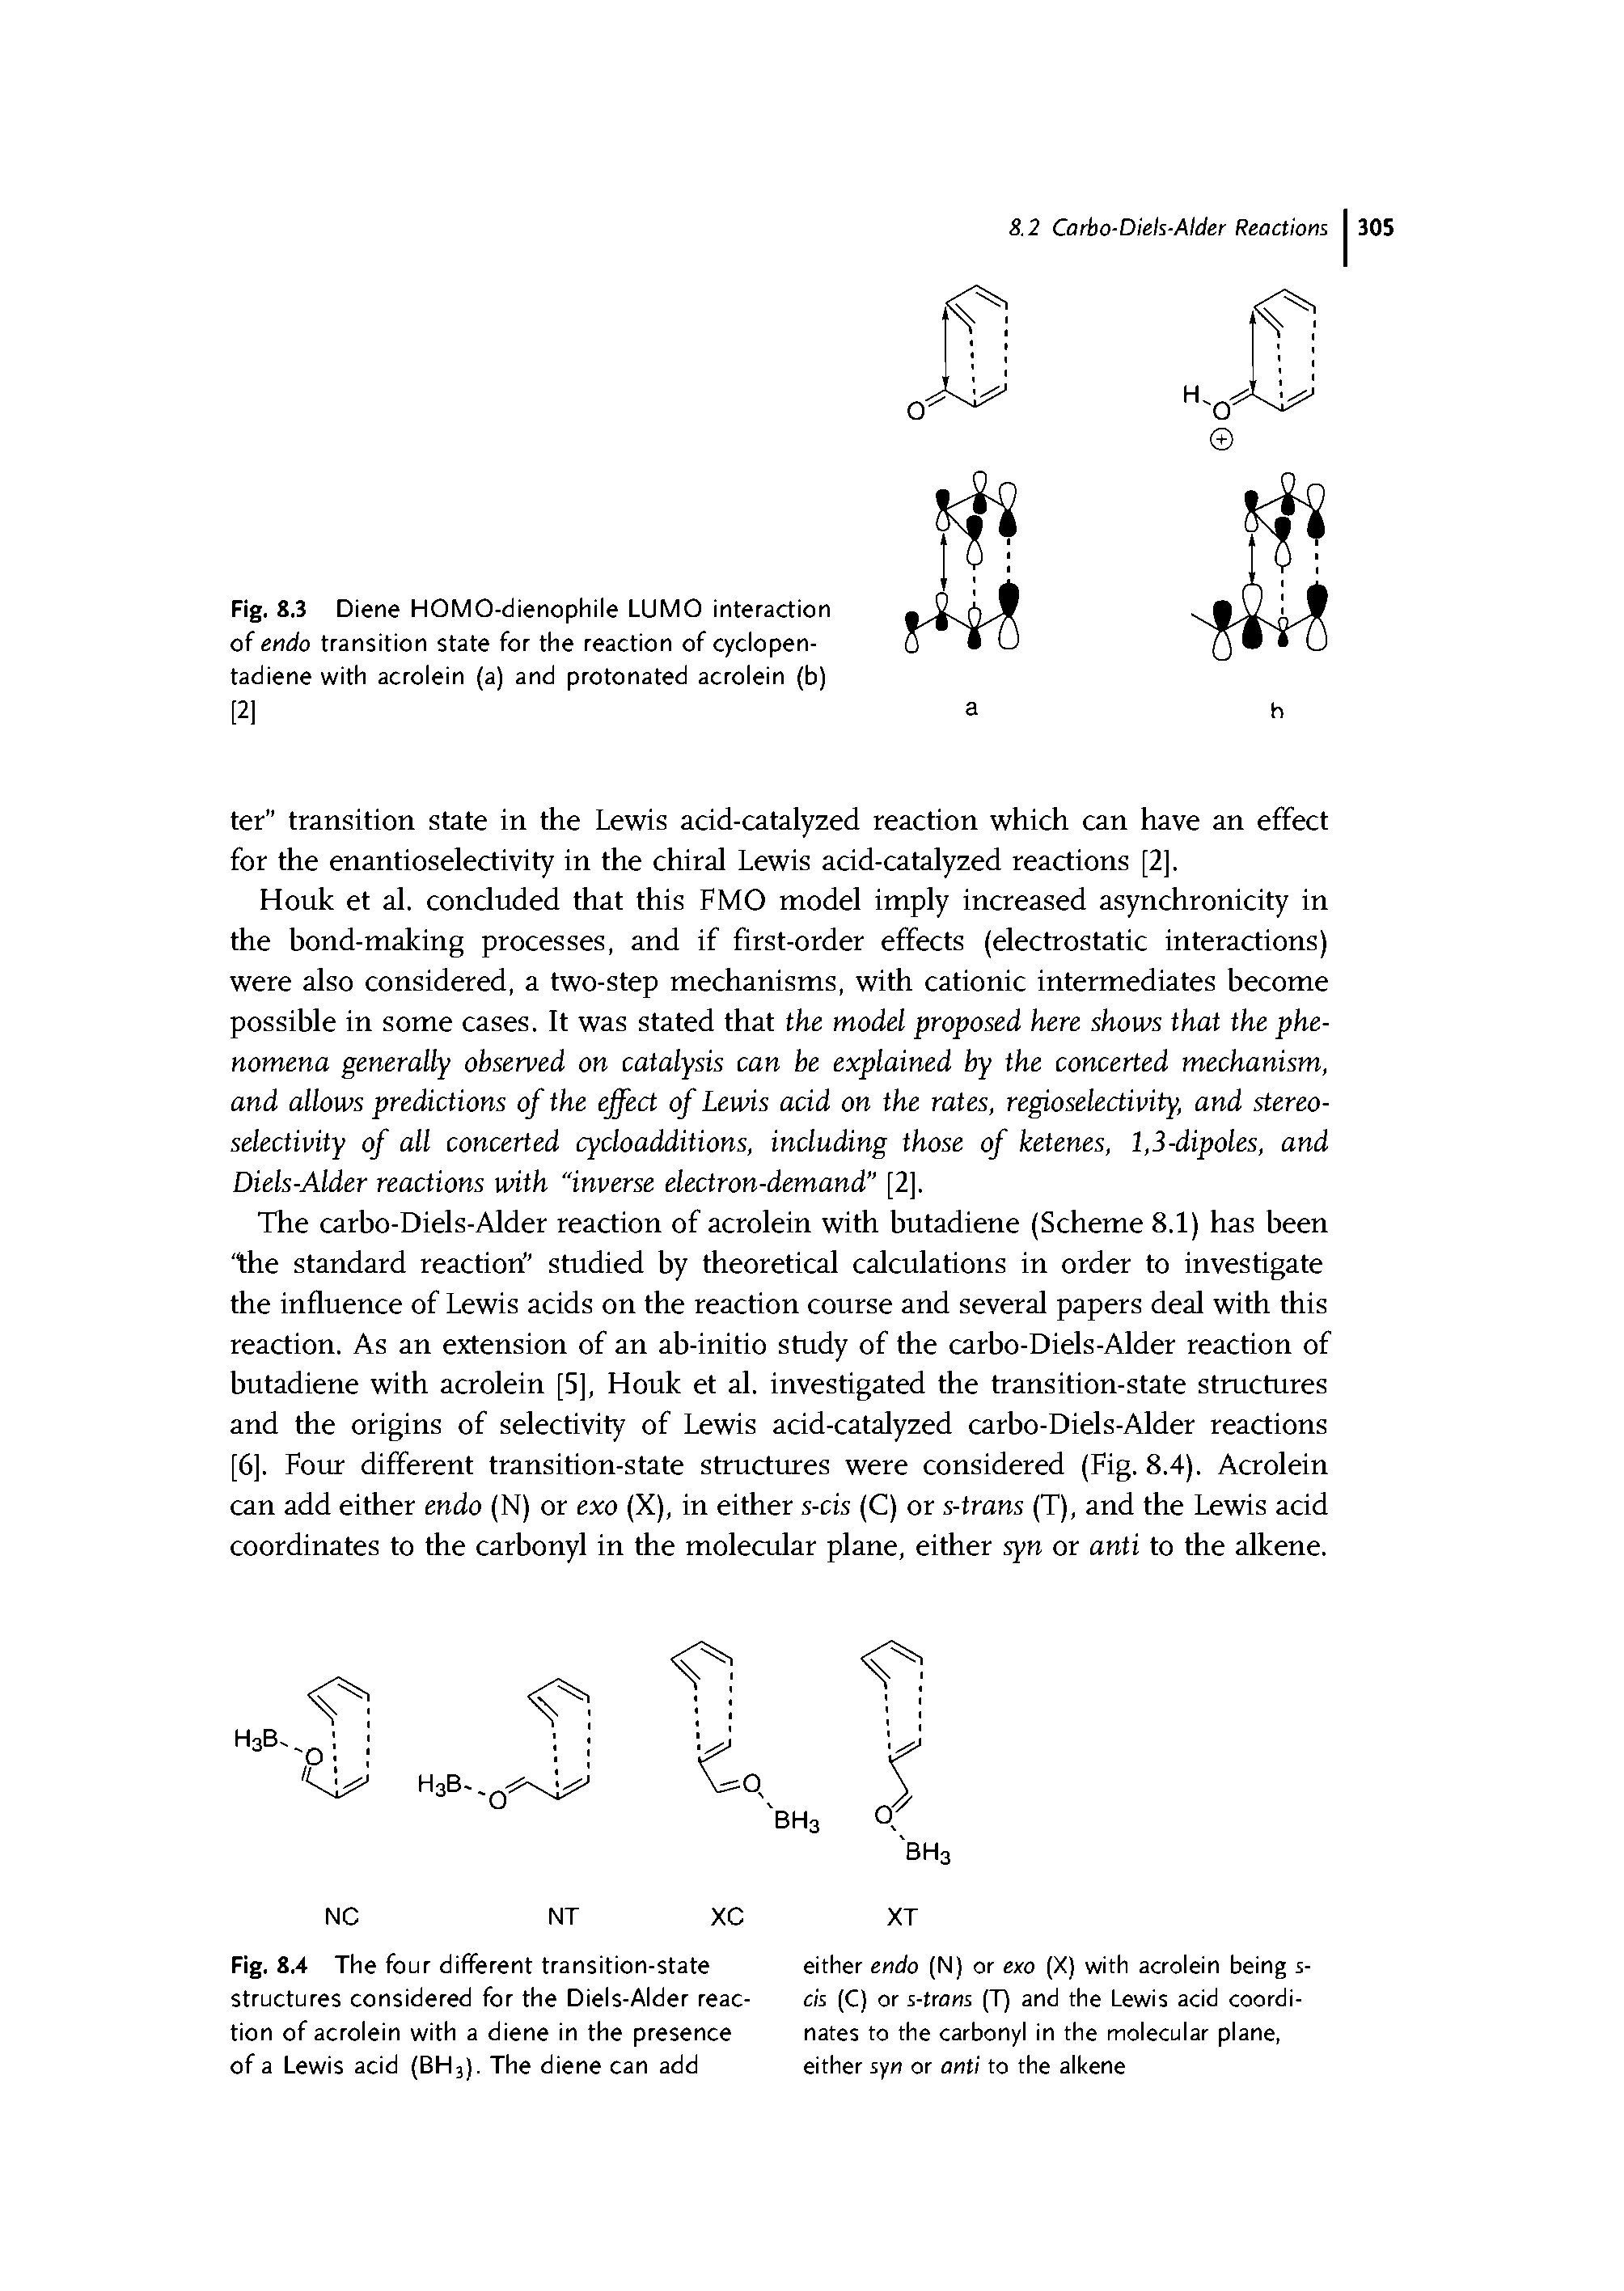 "Fig. 8.4 The four different transition-state structures considered for the <a href=""/info/diels_alder_reaction"">Diels-Alder reaction</a> of acrolein with a diene in the presence of a <a href=""/info/lewis_acid"">Lewis acid</a> (BH3). The diene can add"